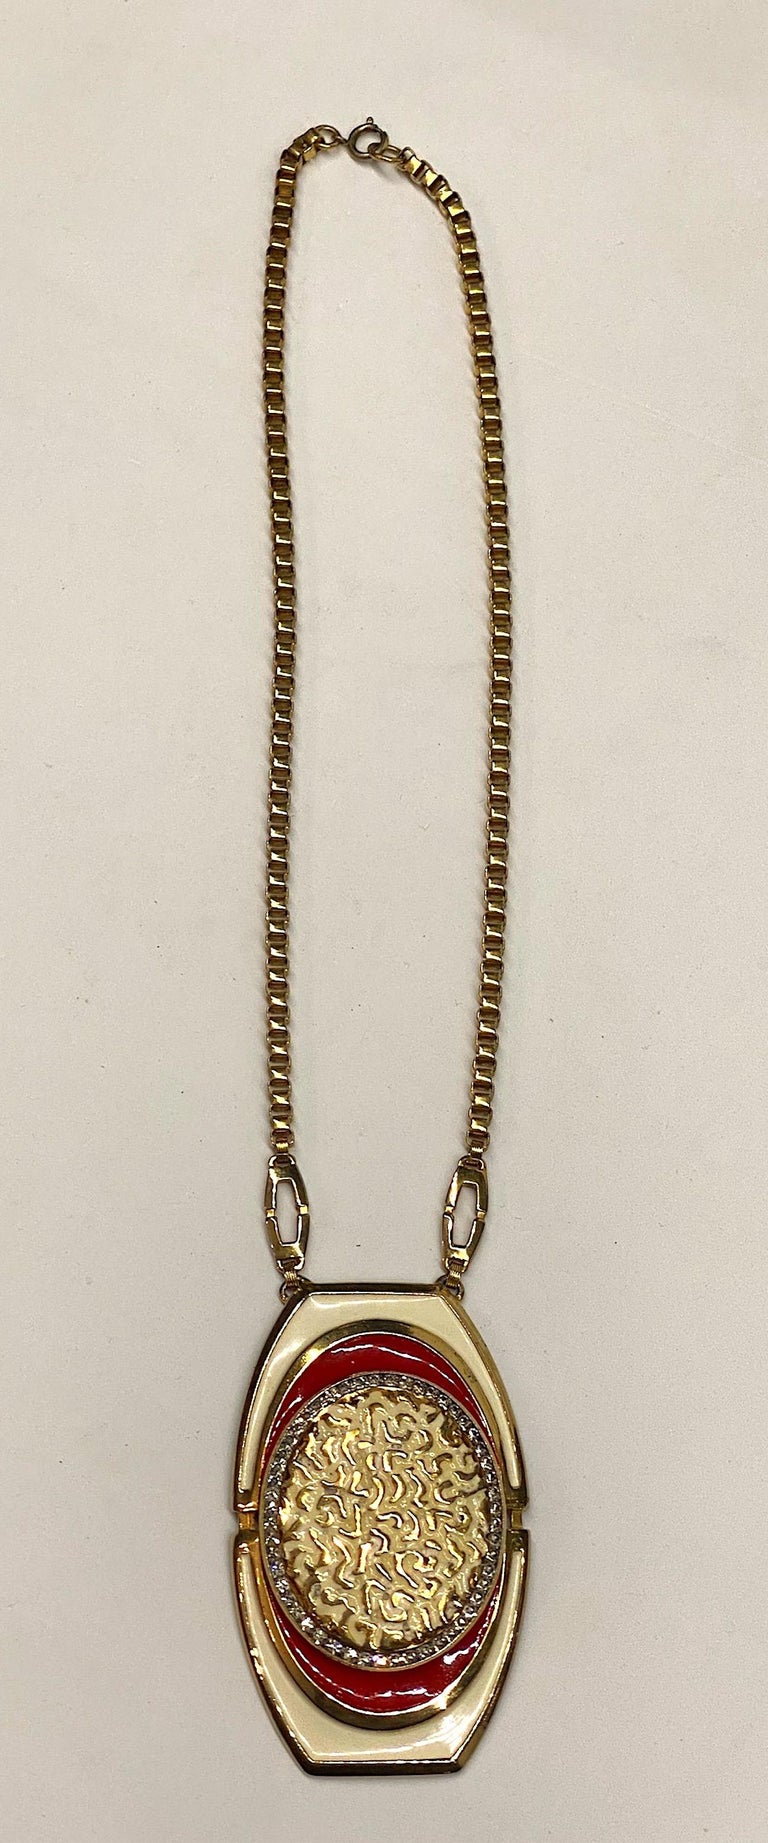 Lucien Piccard 1970s enamel and gold tone pendant necklace. A large cast pendant 2.13 inches wide and 3.5 inches long is suspended from two .88 long oval links and a thick box link chain. The pendant is enameled in an off white and red enamel. The